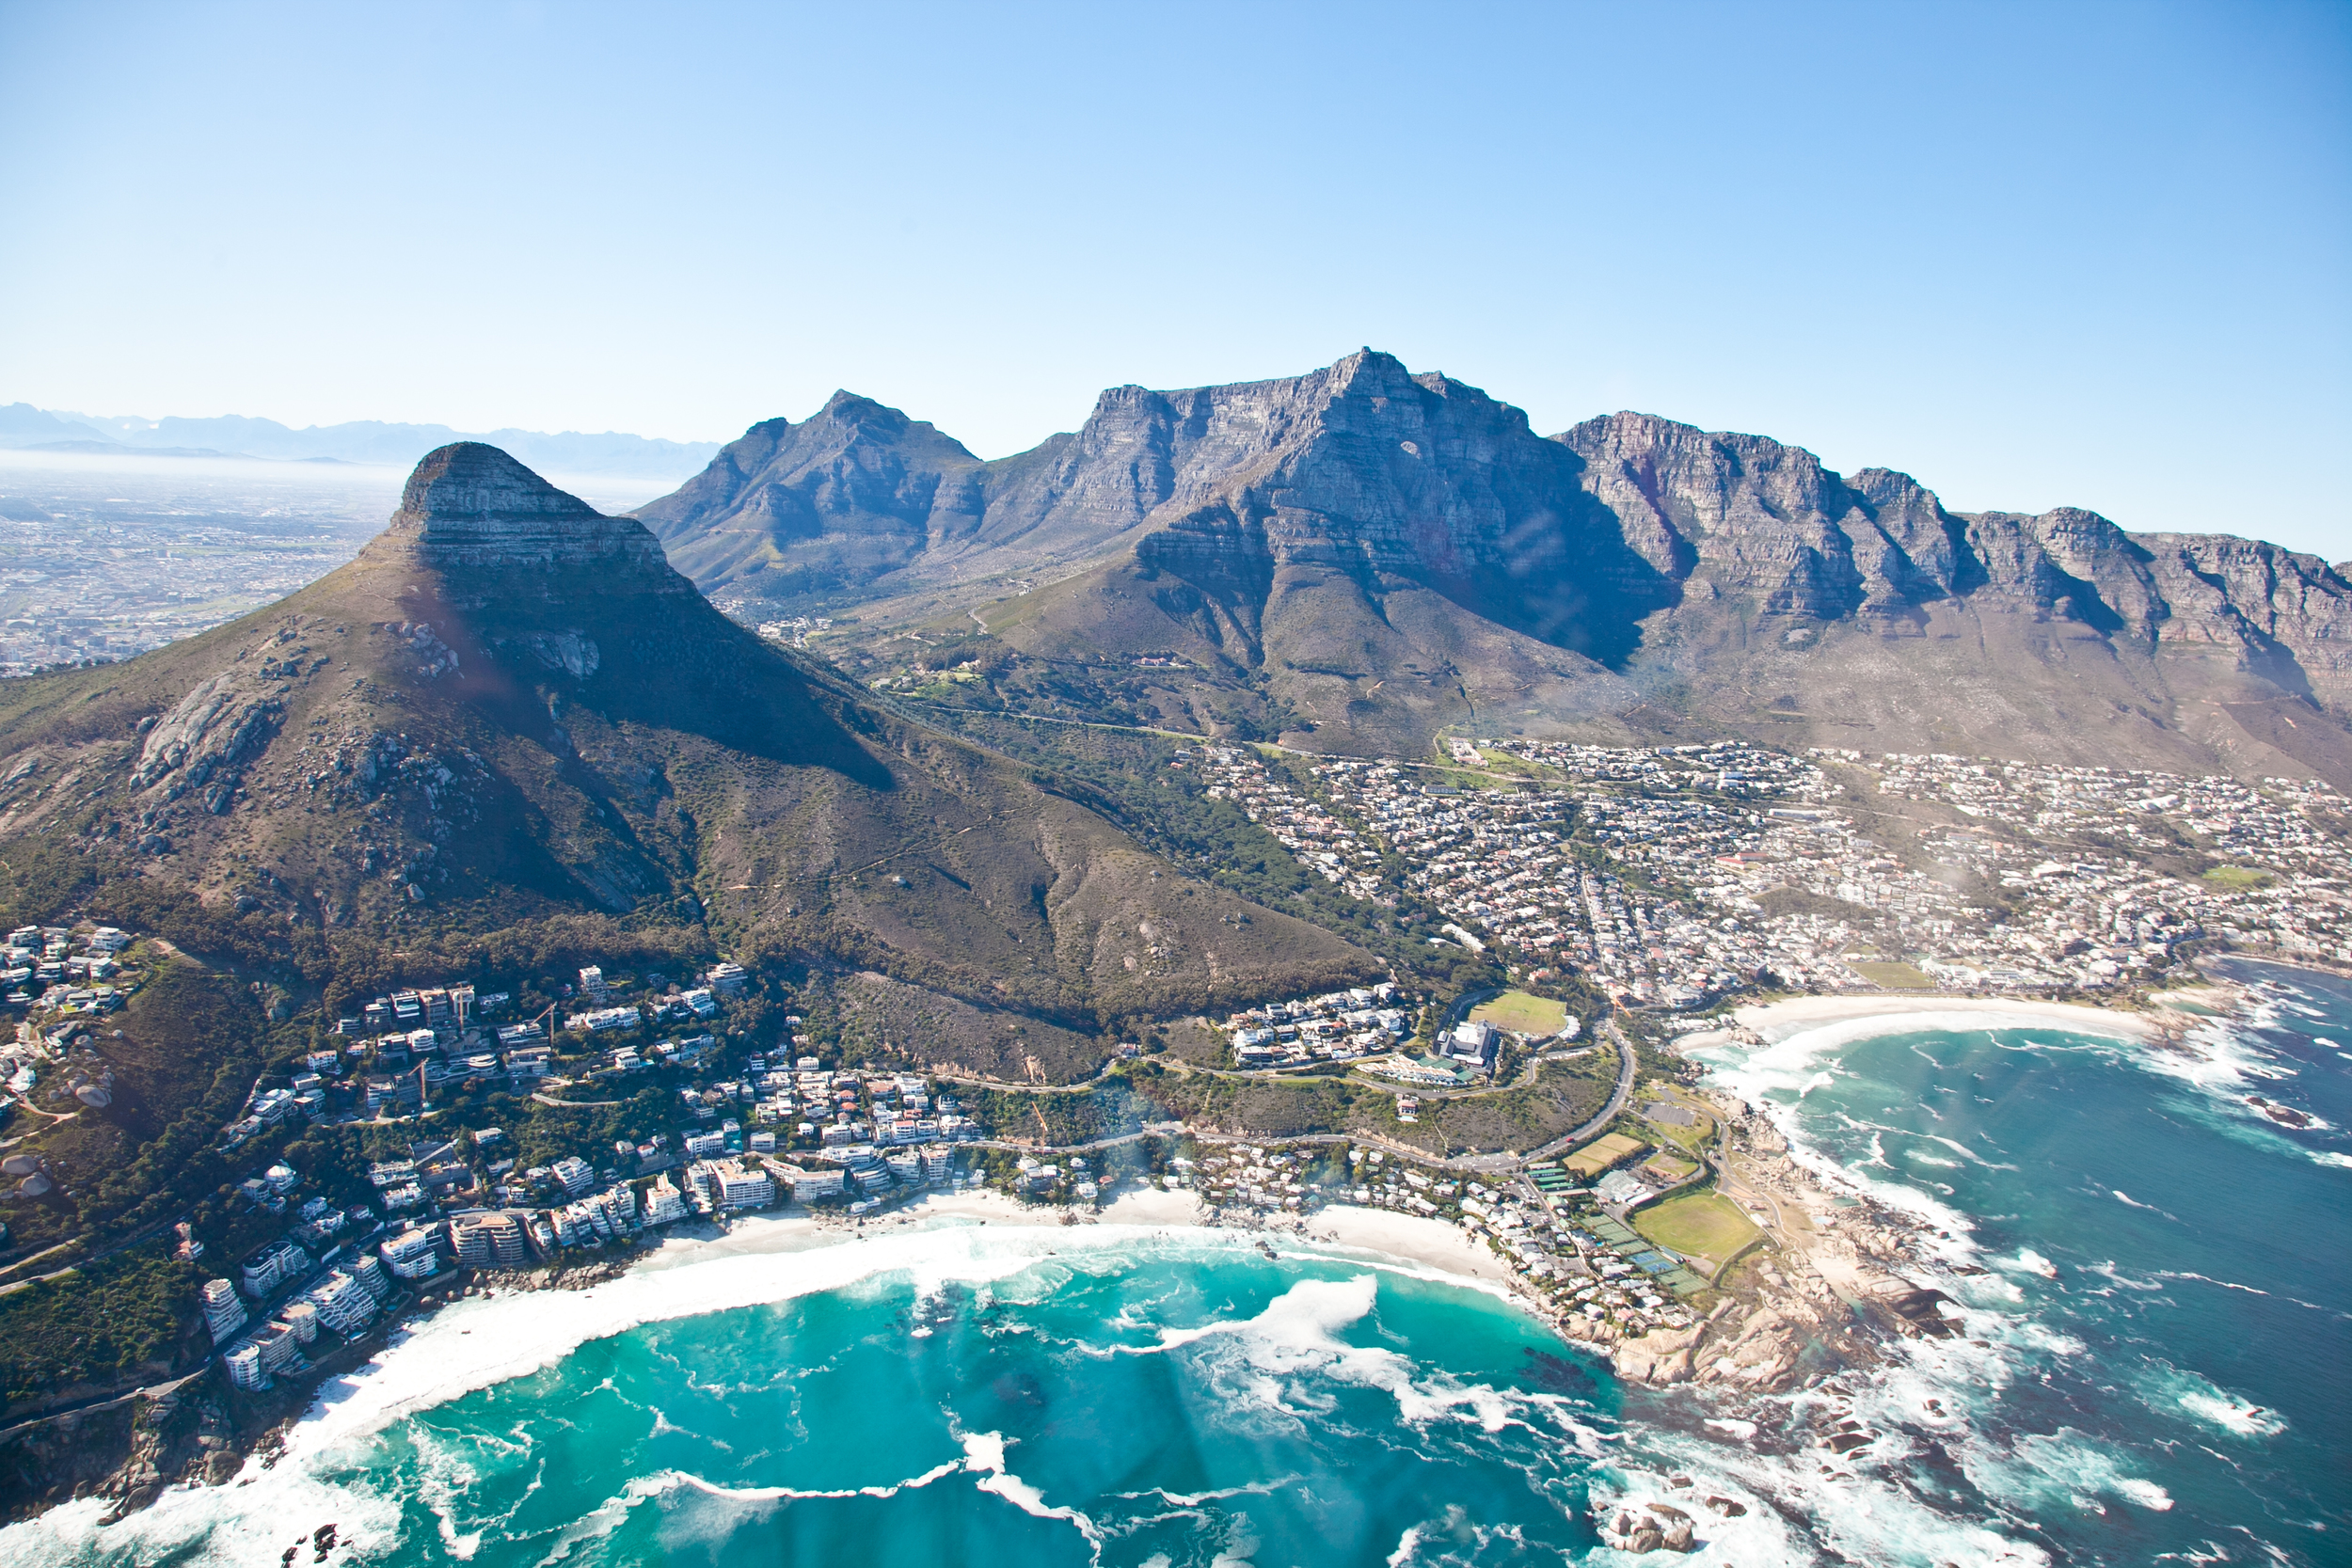 IMG_4819-cape-town-south-africa-helicopter-ride-trisa-taro